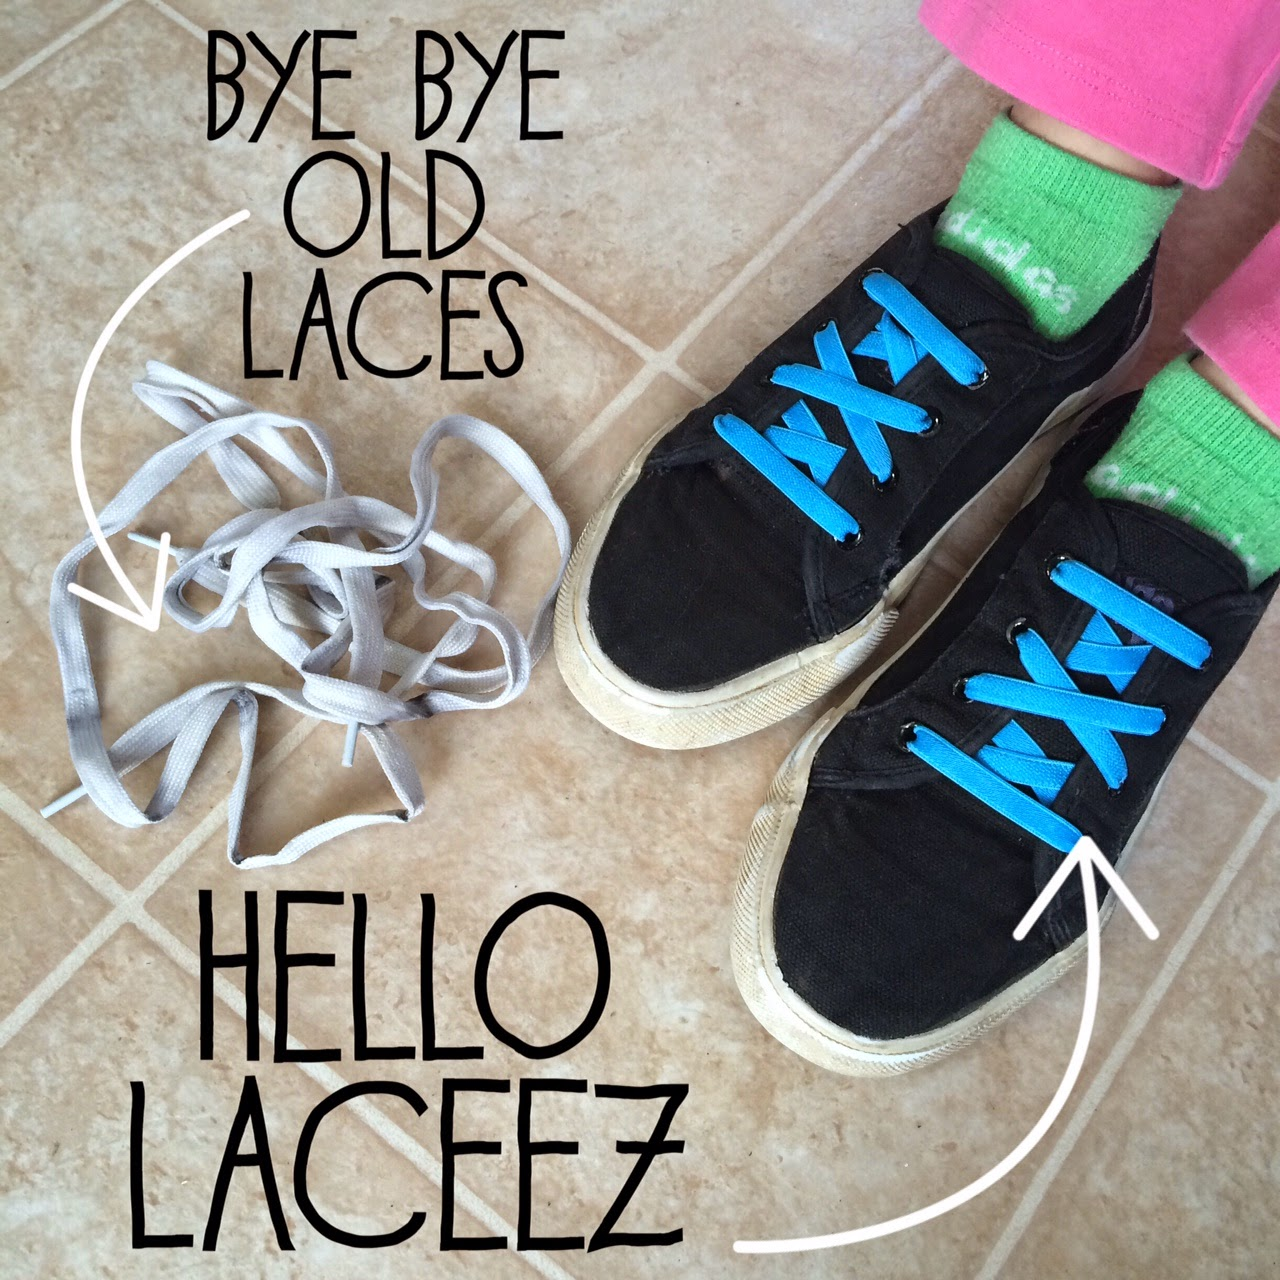 Laceez Magic Shoelaces Review